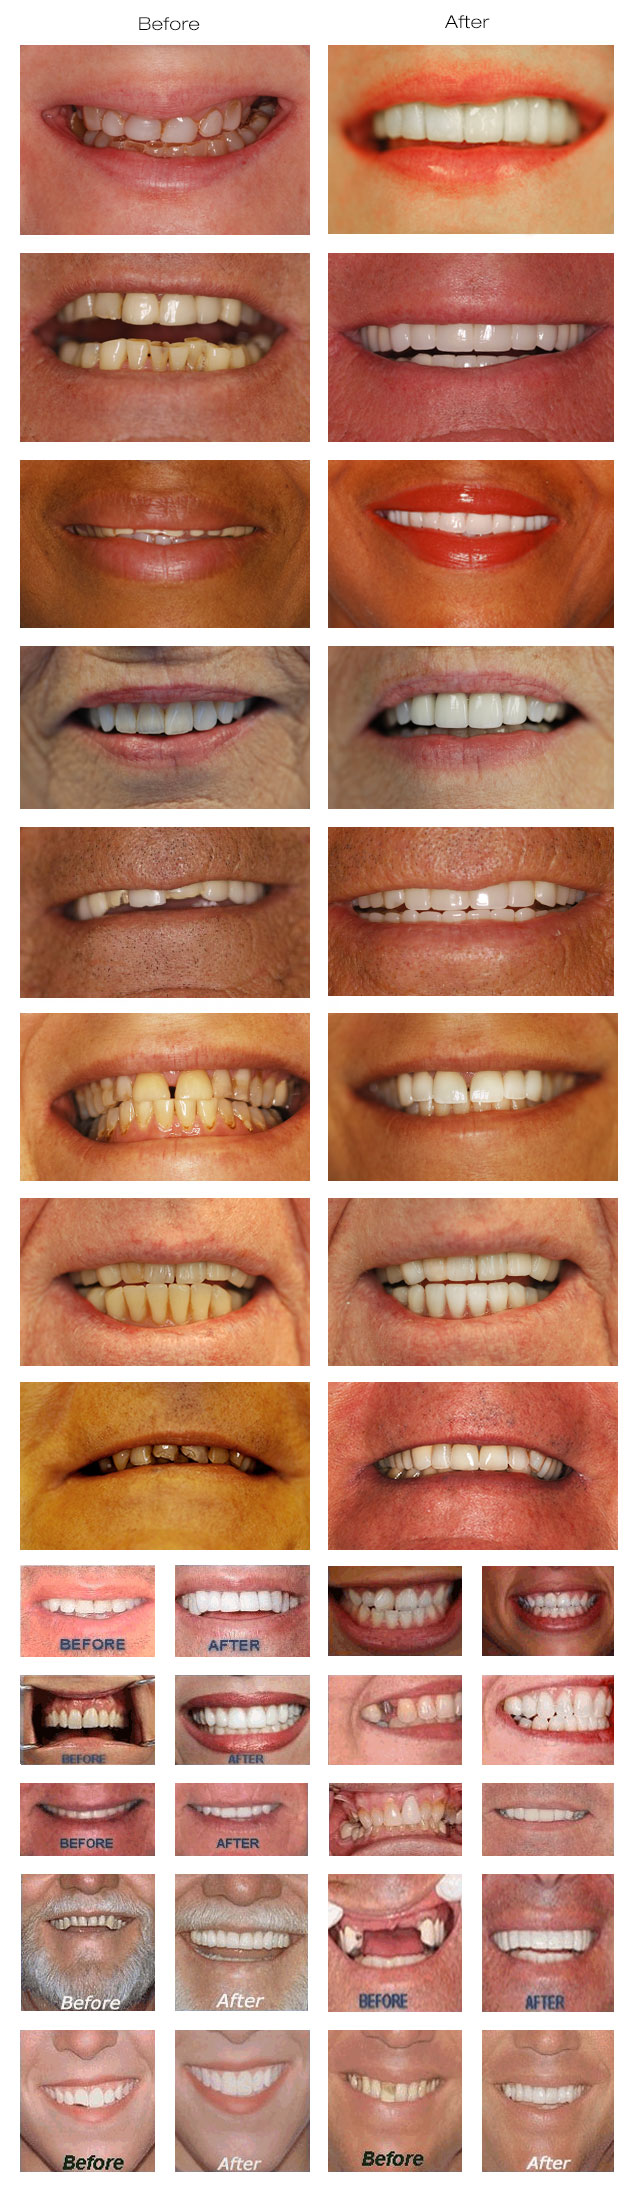 Before and After Smile Makeovers